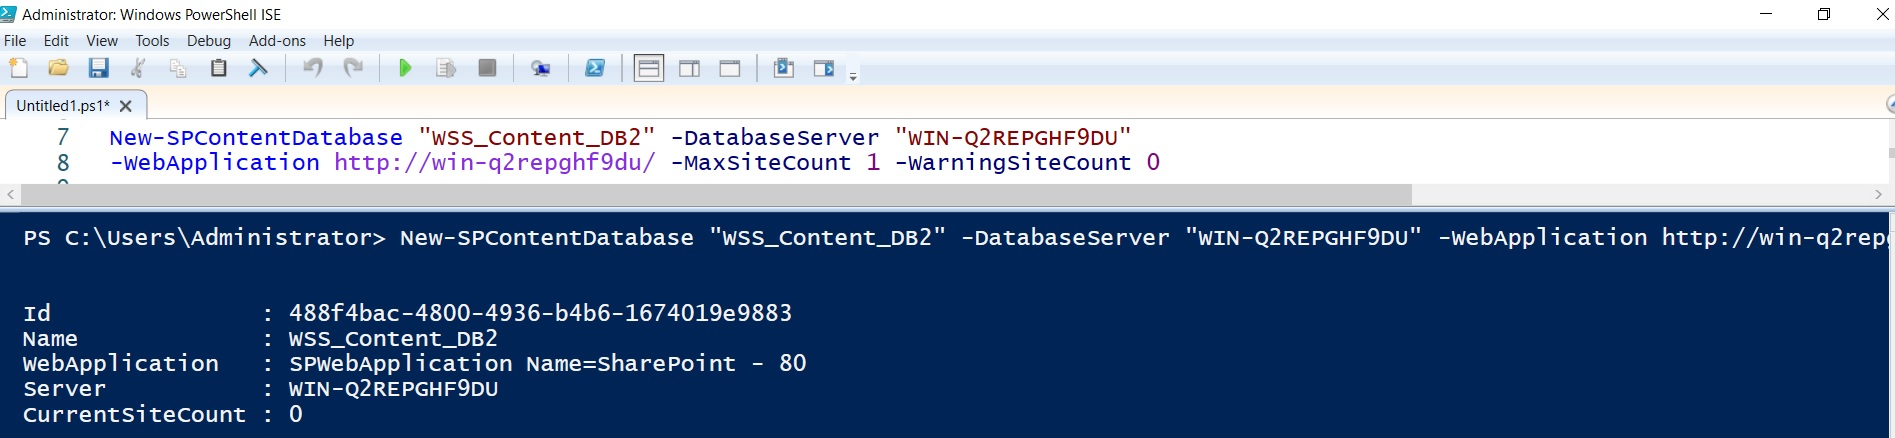 Create new content database in sharepoint using powershell